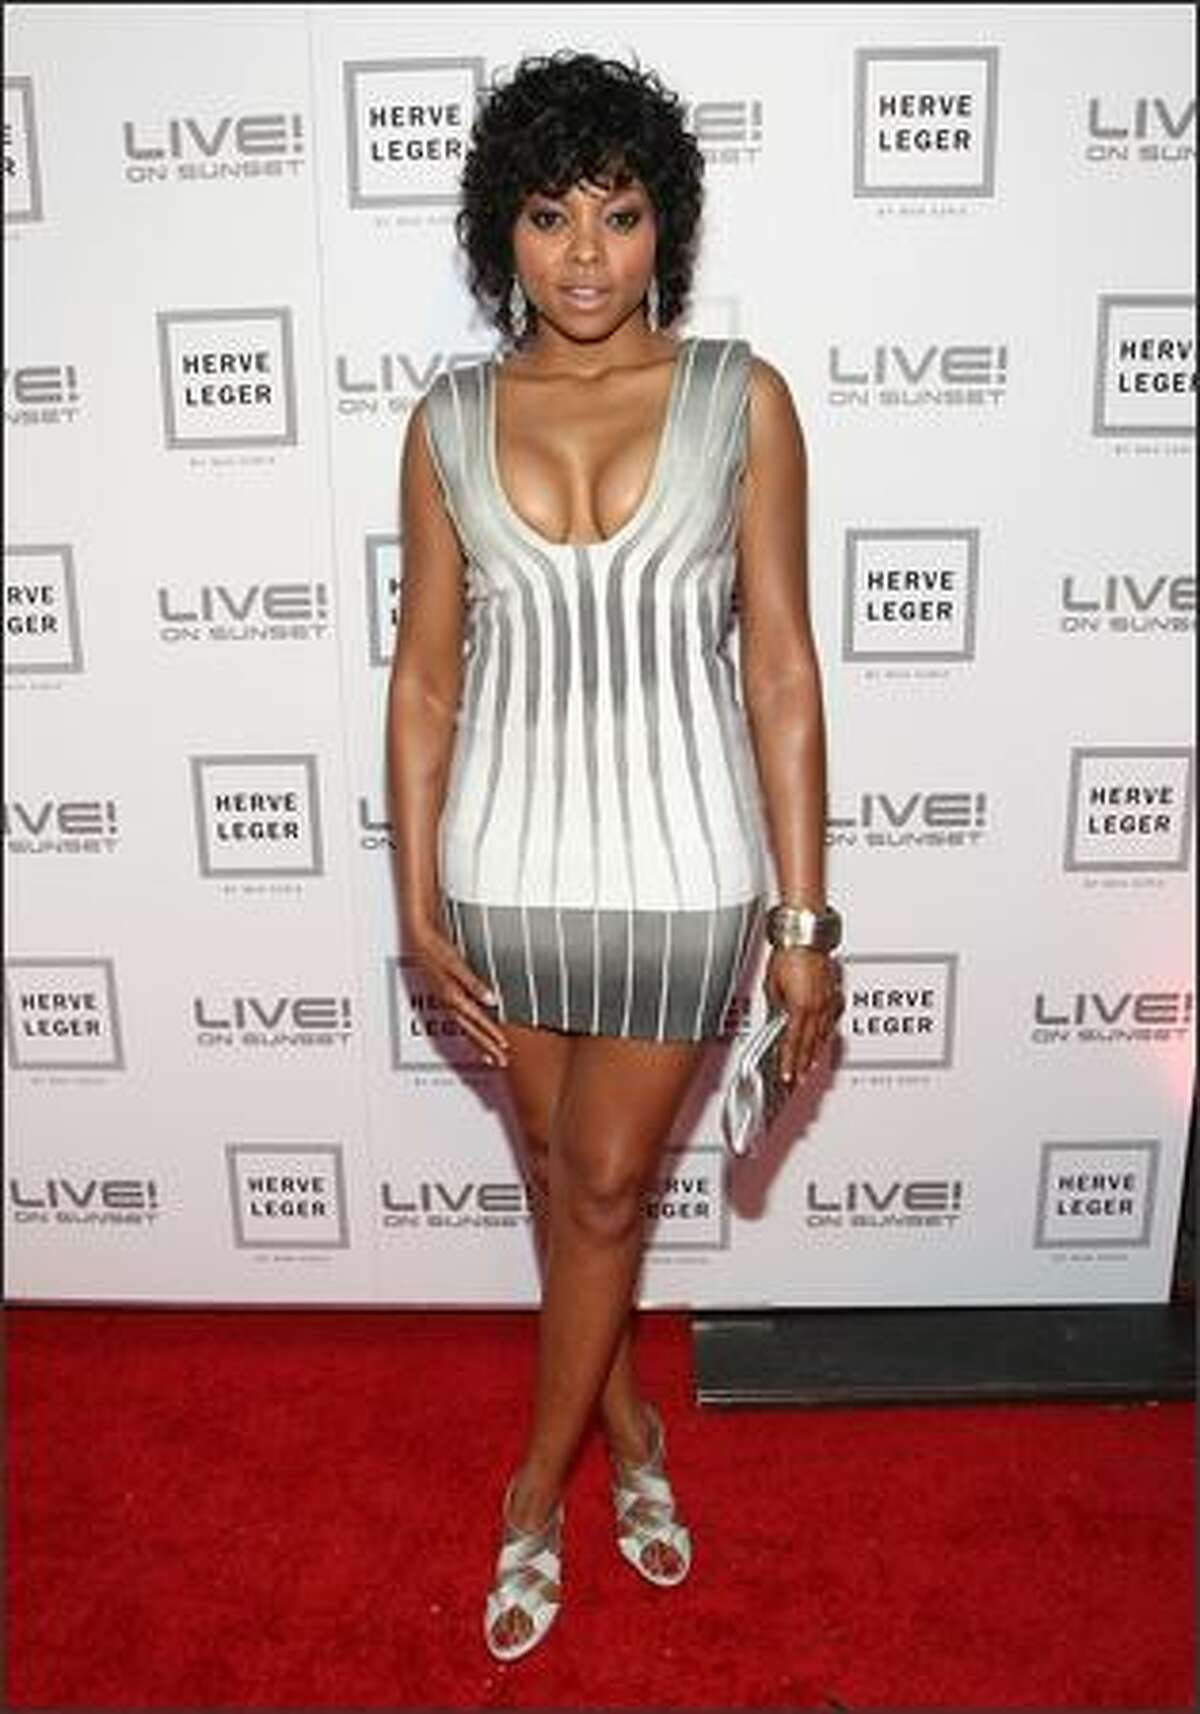 Actress Taraji P. Henson arrives at the Herve Leger by Max Azria Collection Launch party held at Live! on Sunset in West Hollywood, California.